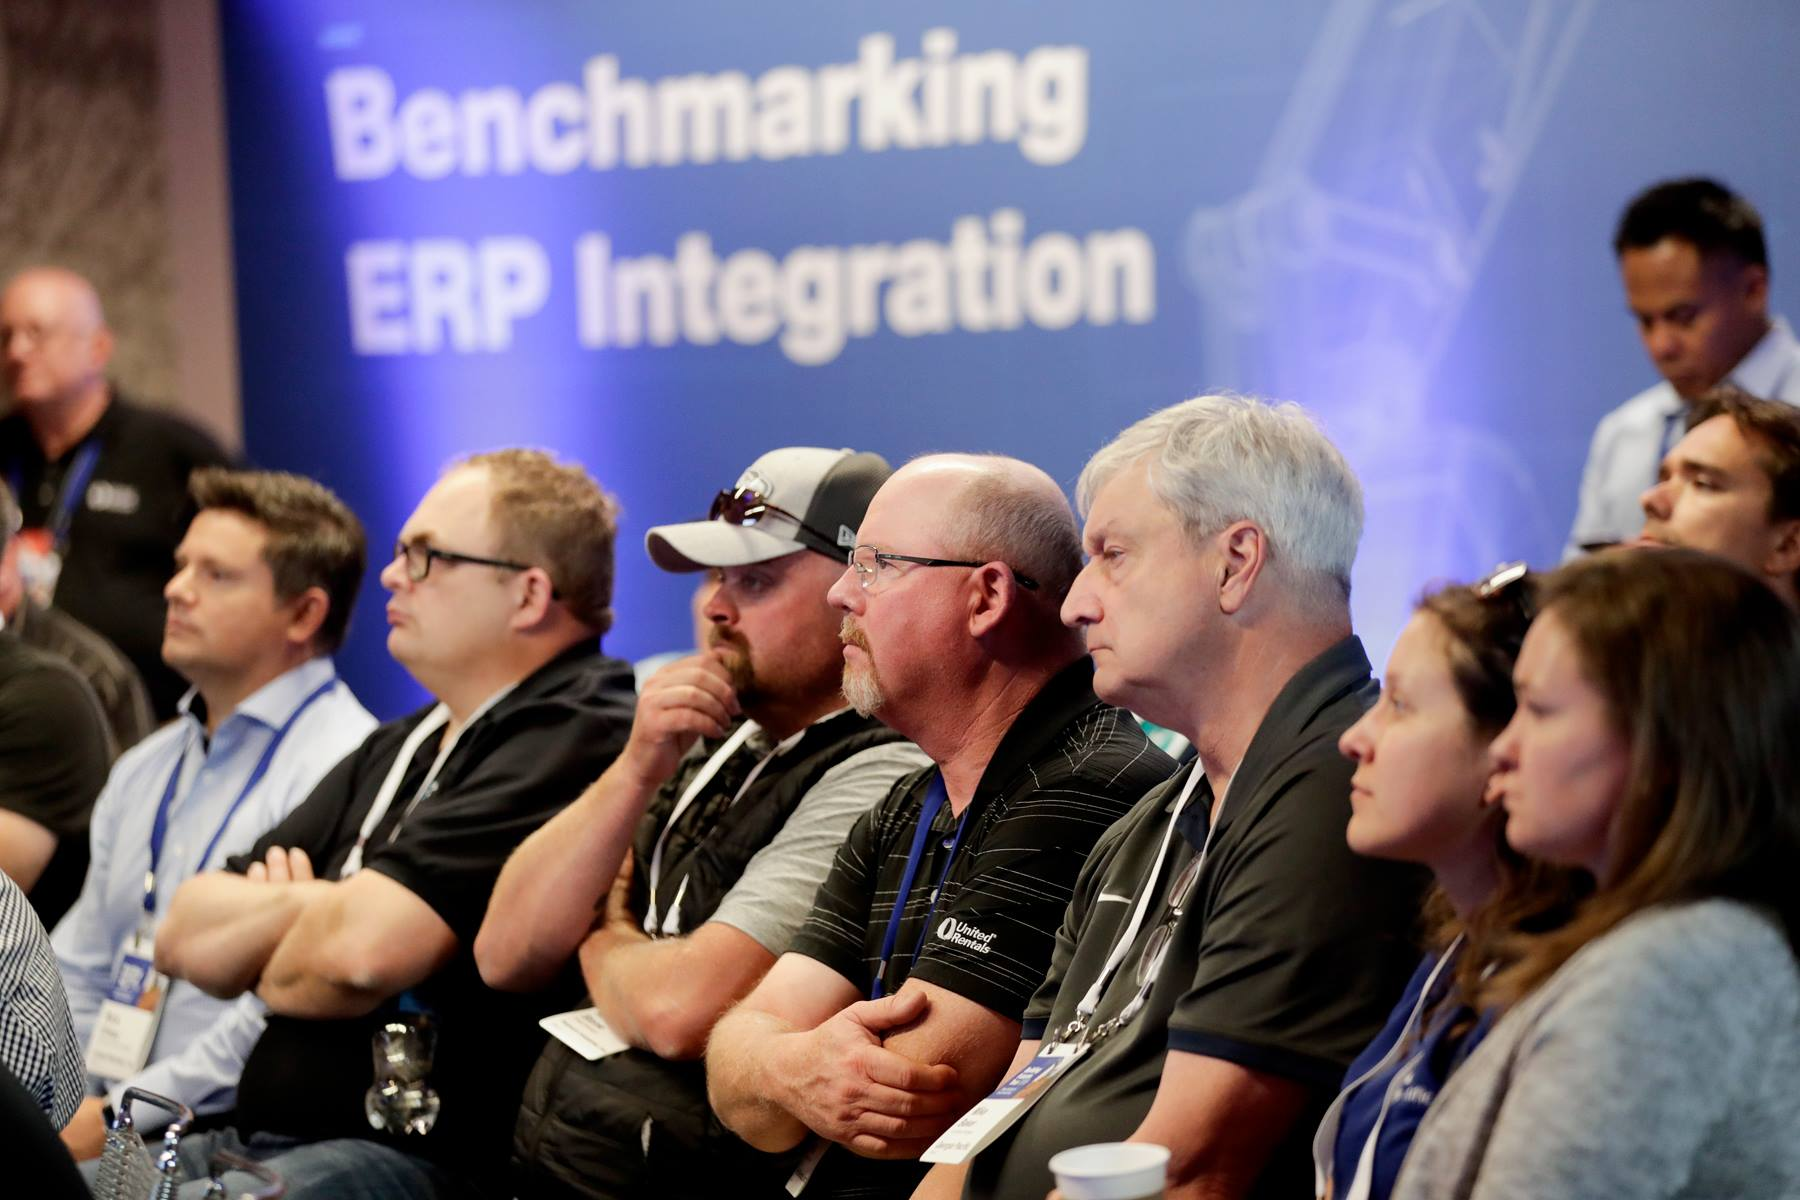 people attend conference at United Rentals ERP software